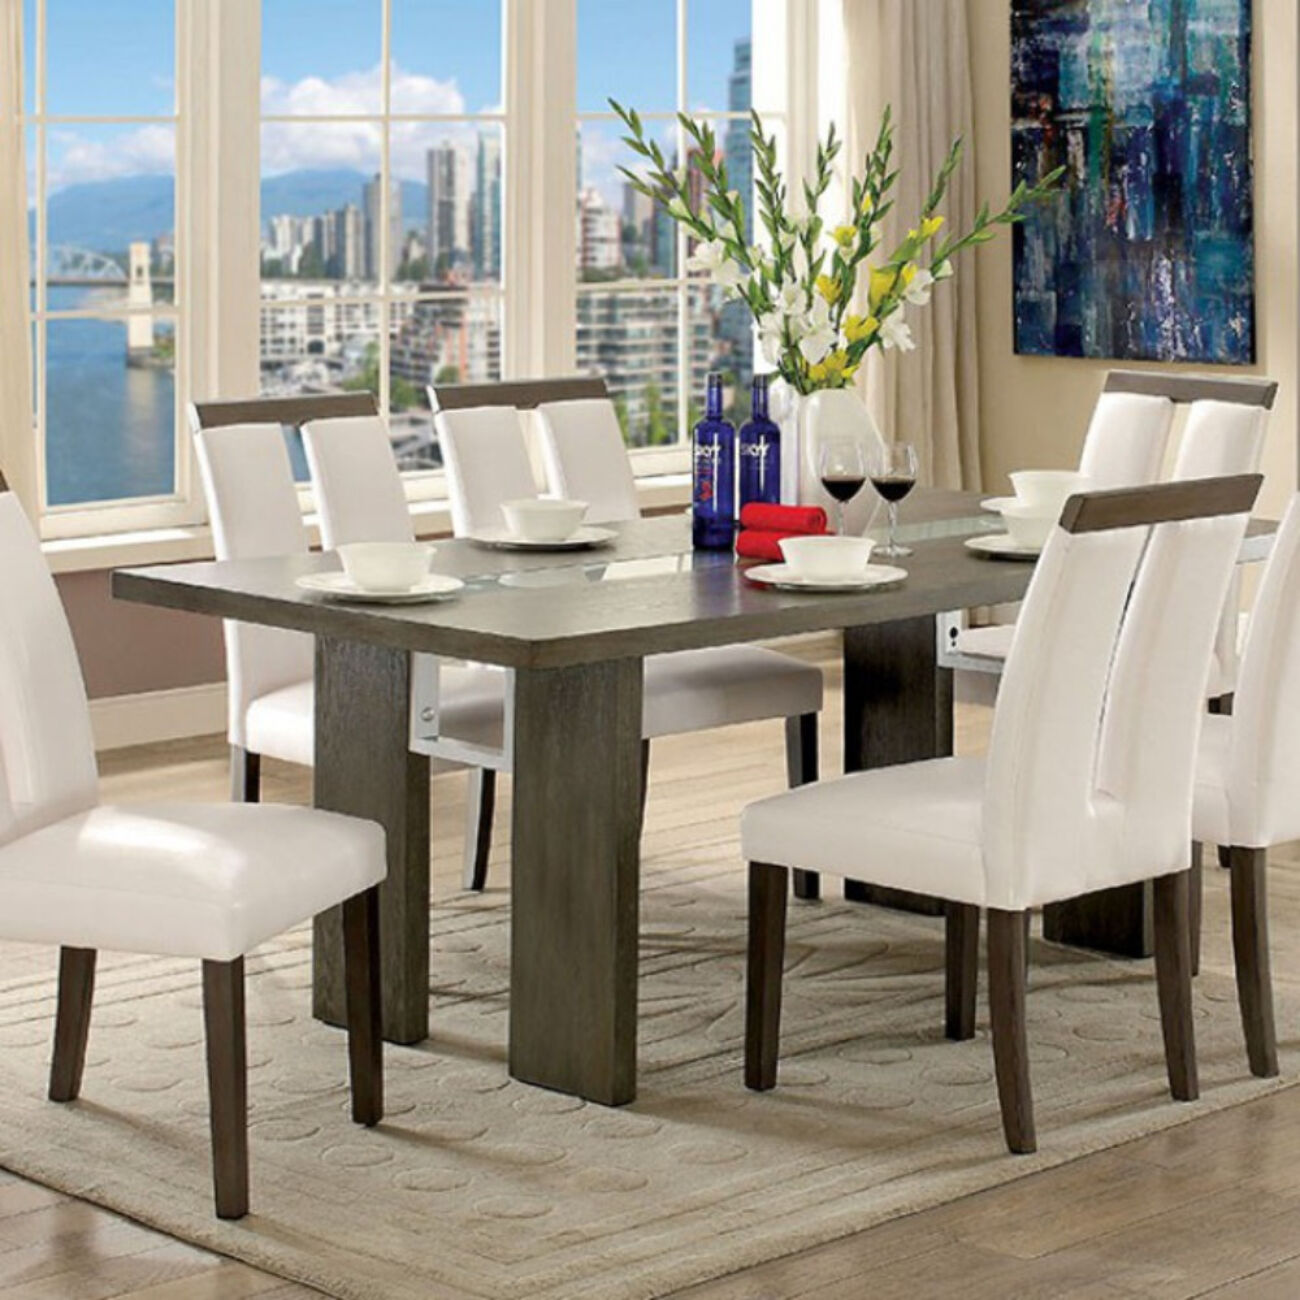 Luminar I Contemporary Style Dining Table With Led Lights, Gray